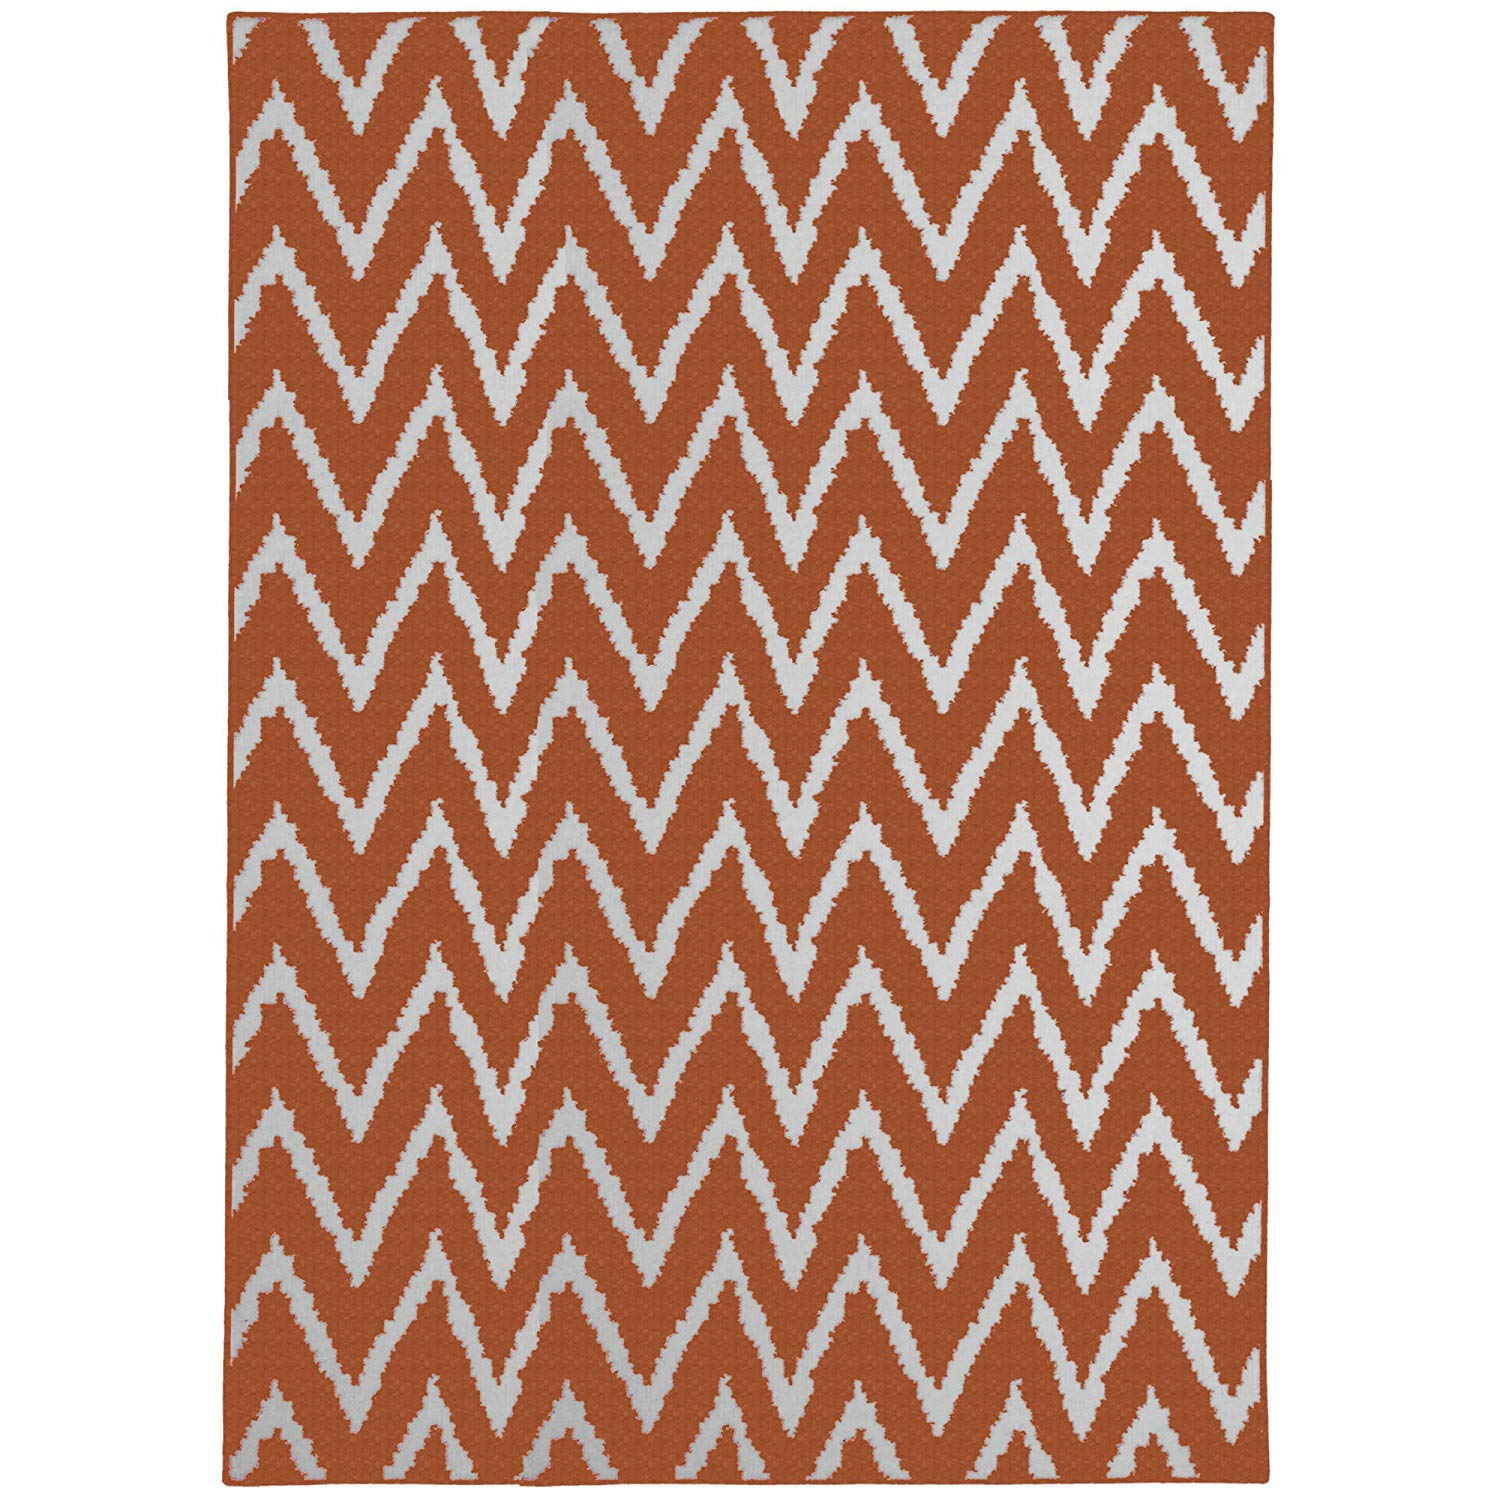 33009c20e6e Get Quotations · Distressed Zig Zag Area Rug